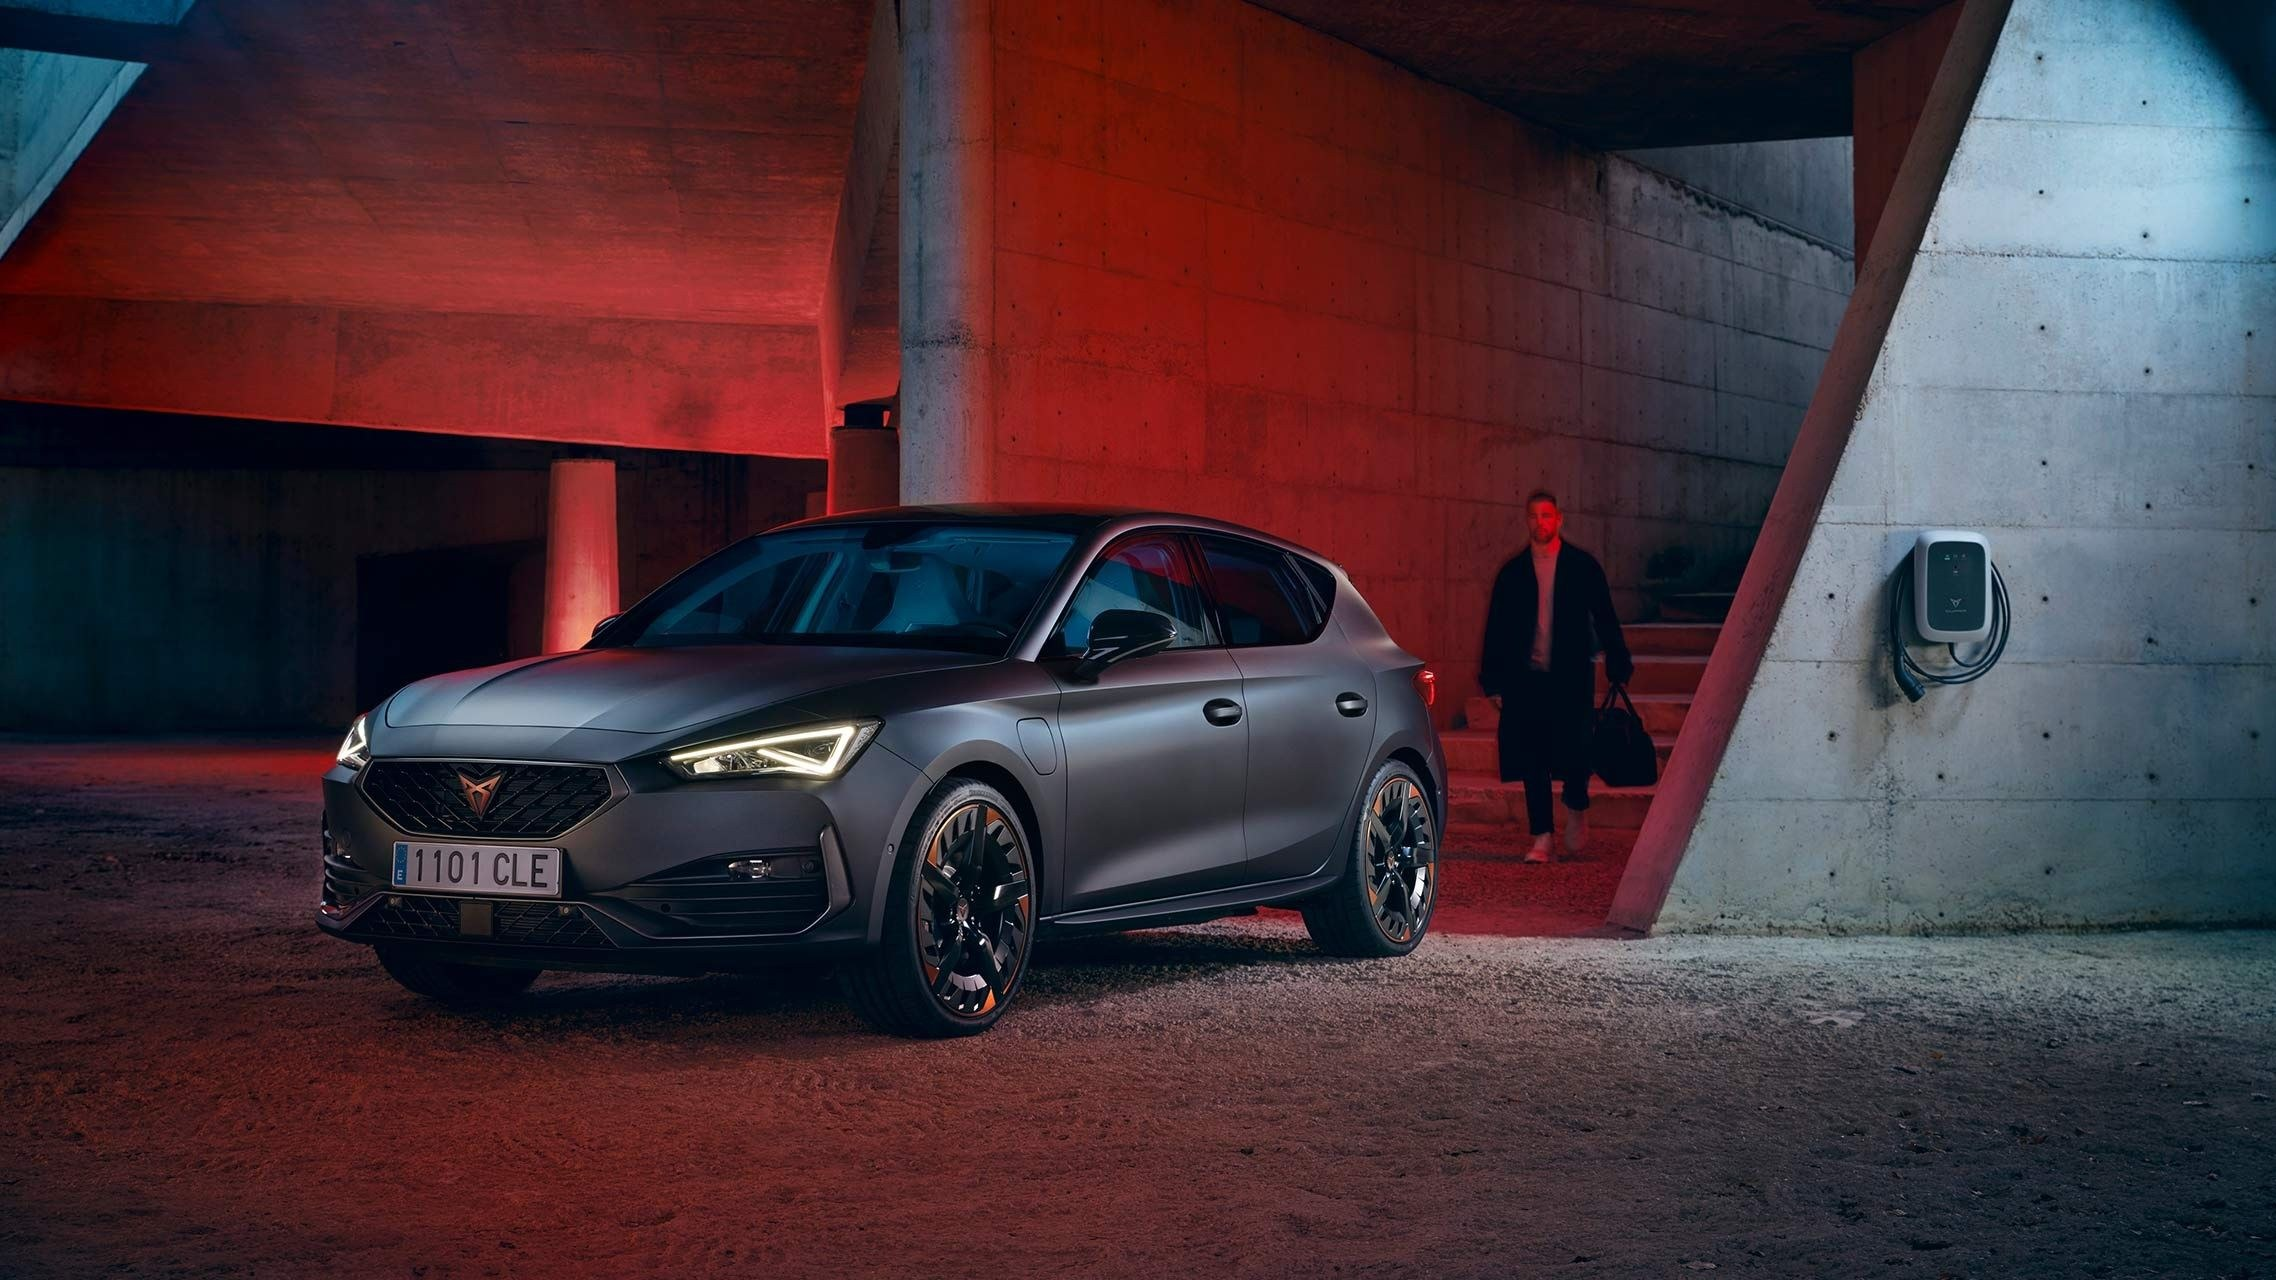 new-cupra-leon-ehybrid-five-door-magnetic-tech-matte-compact-sports-car-side-view-charging-wallbox